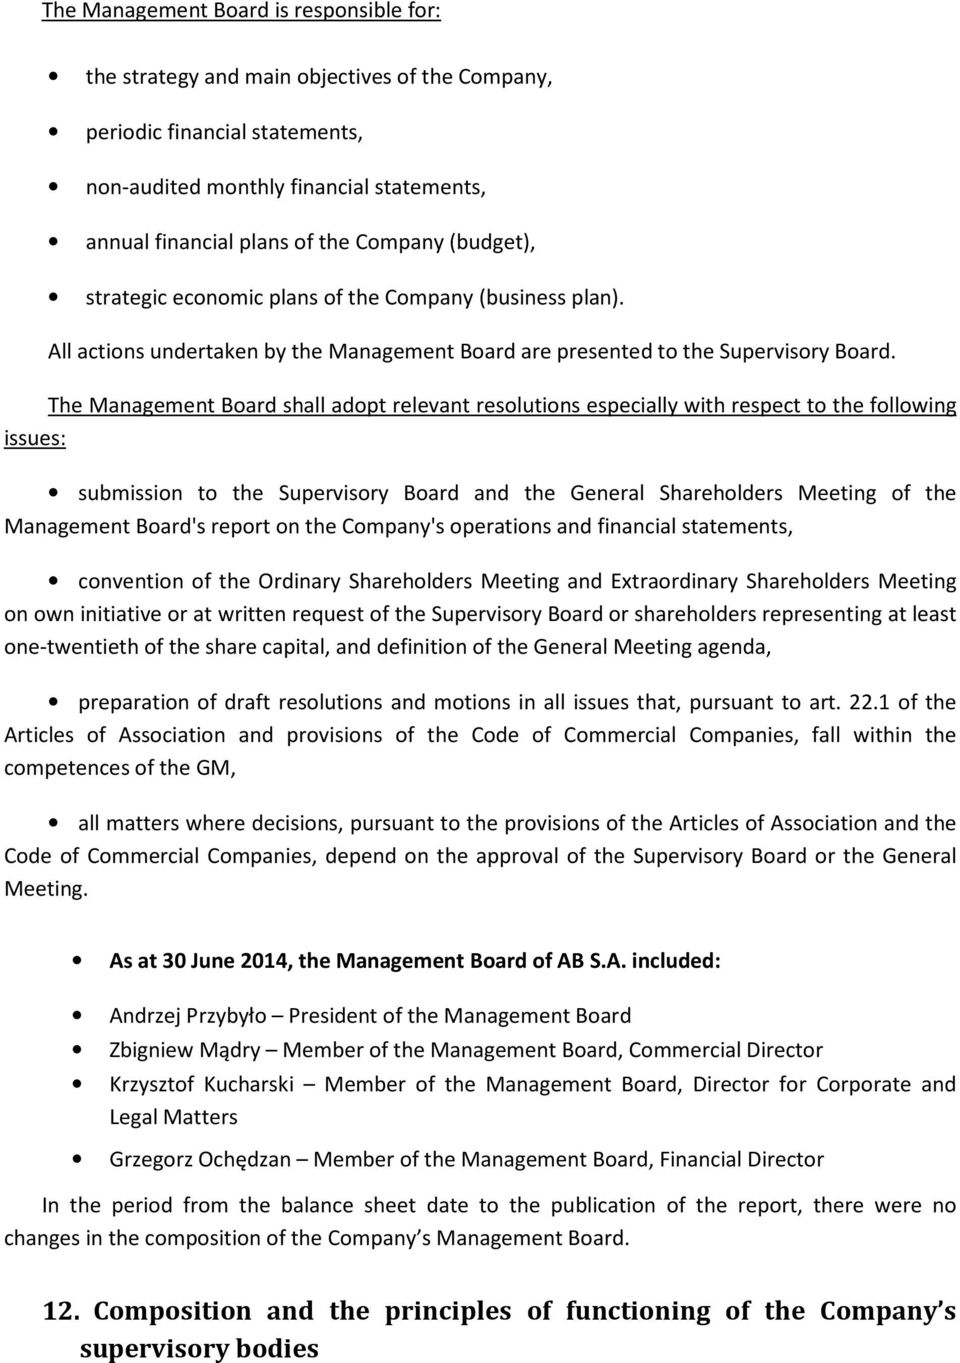 The Management Board shall adopt relevant resolutions especially with respect to the following issues: submission to the Supervisory Board and the General Shareholders Meeting of the Management